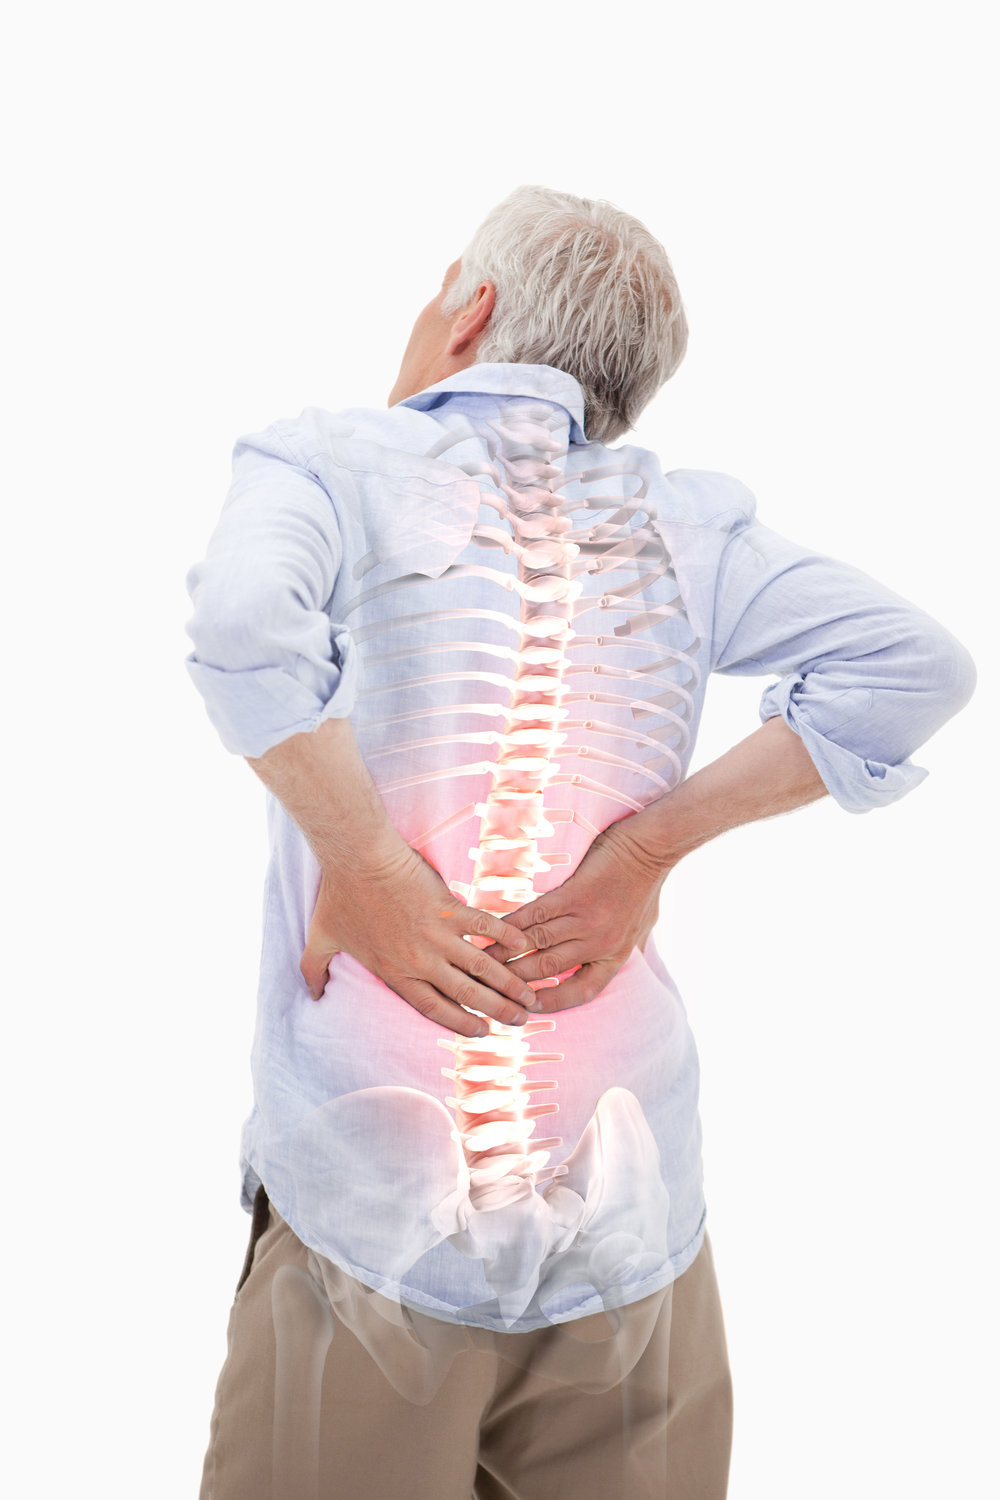 Study:  Noninvasive Treatments for Acute, Subacute, and Chronic Low Back Pain: A Clinical Practice Guideline from the American College of Physicians